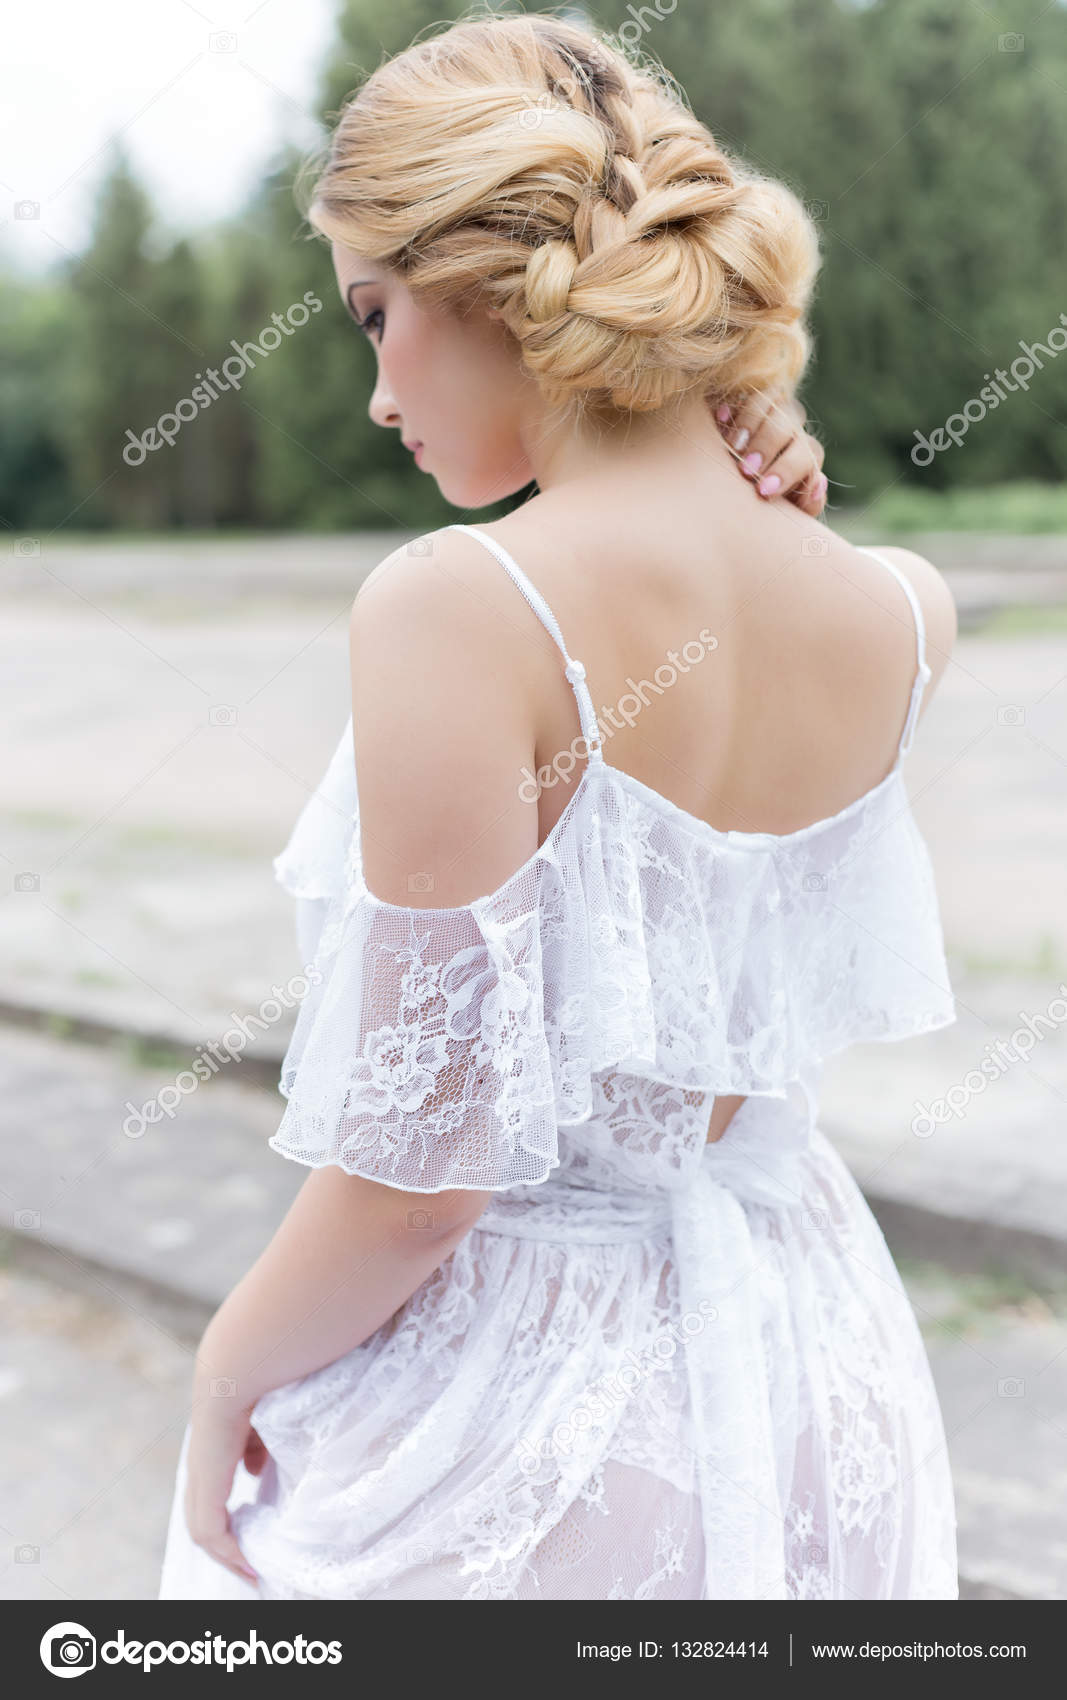 Beautiful Young Sweet Blonde Girl With A Wedding Bouquet In The Hands Of The Boudoir In A White Dress With Evening Hairstyle Walks Near The Ruins Photo By